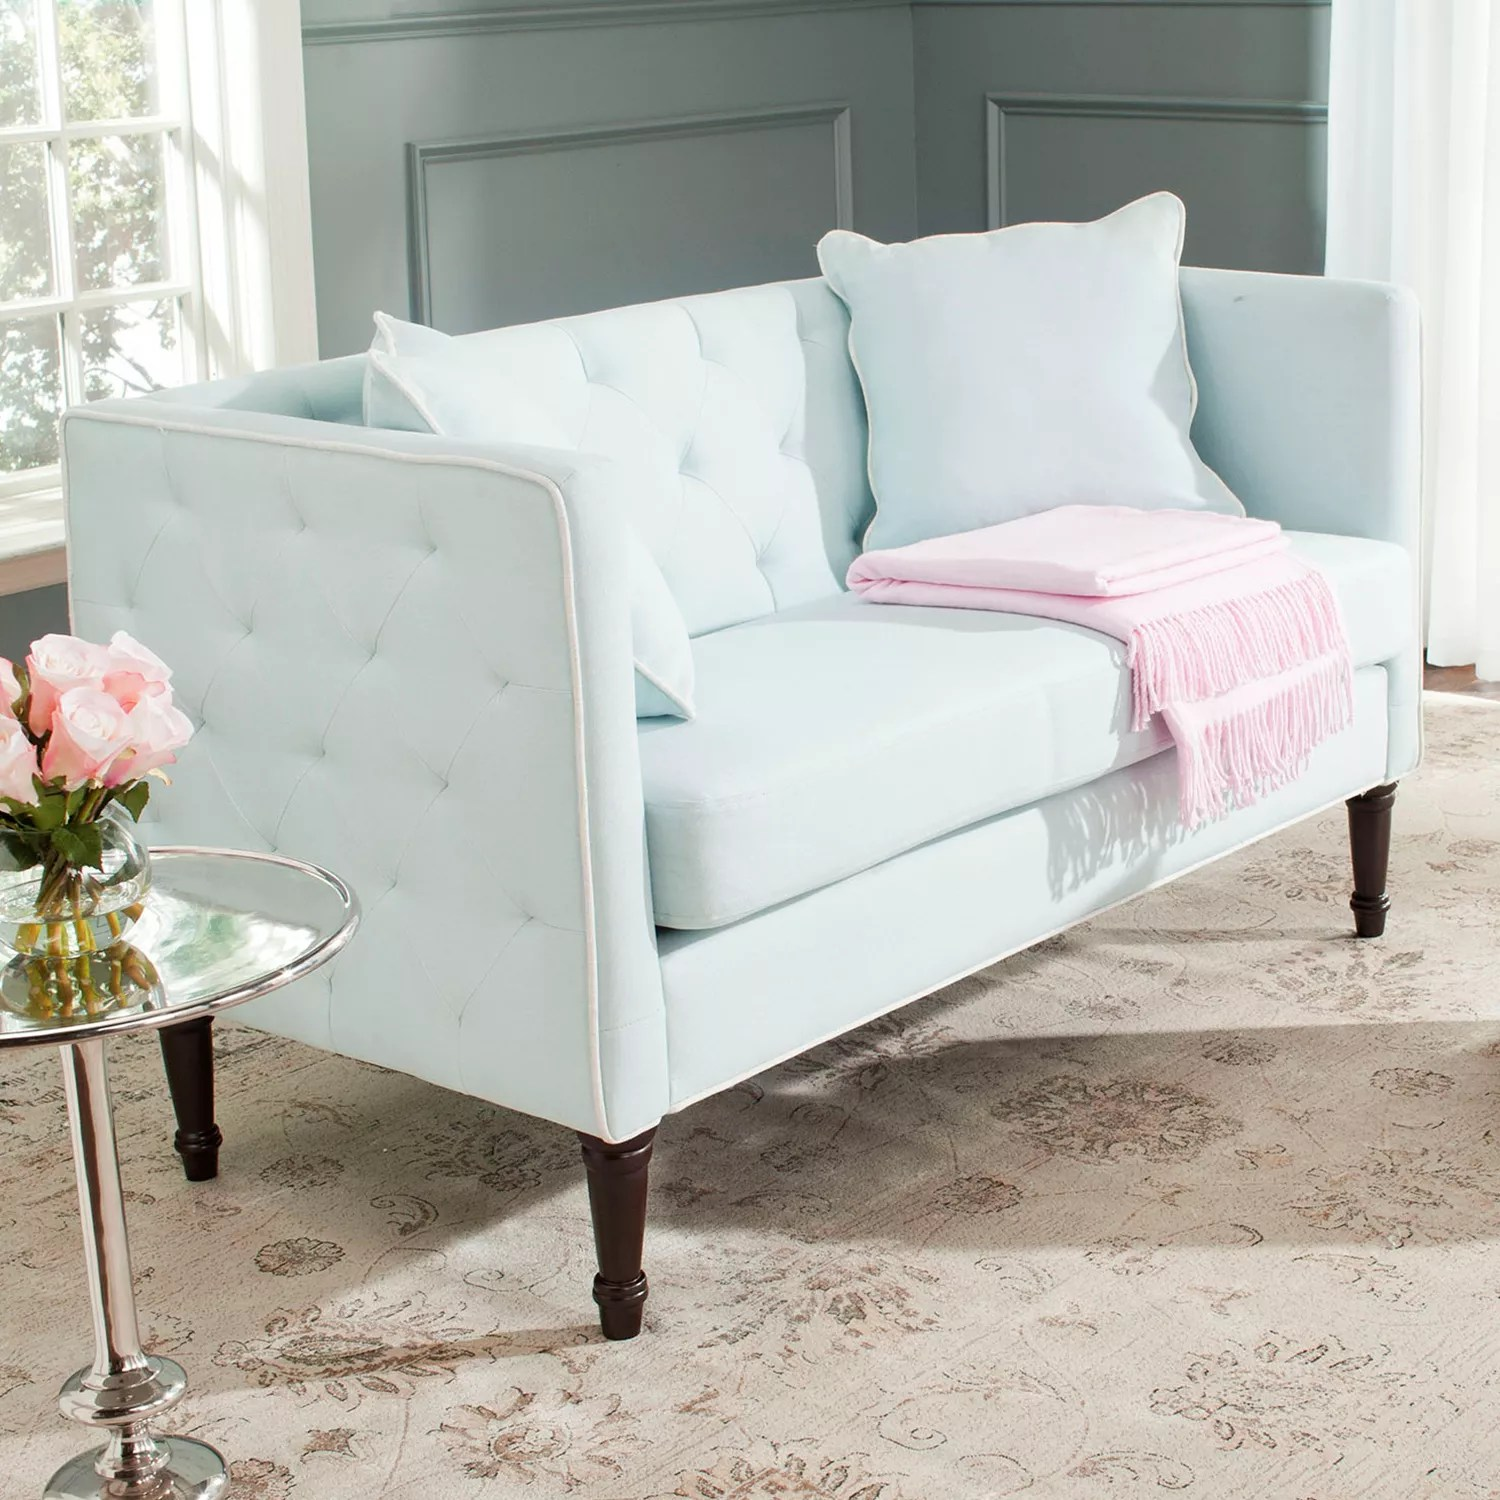 Settee Loveseat Safavieh Sarah Tufted Settee Loveseat